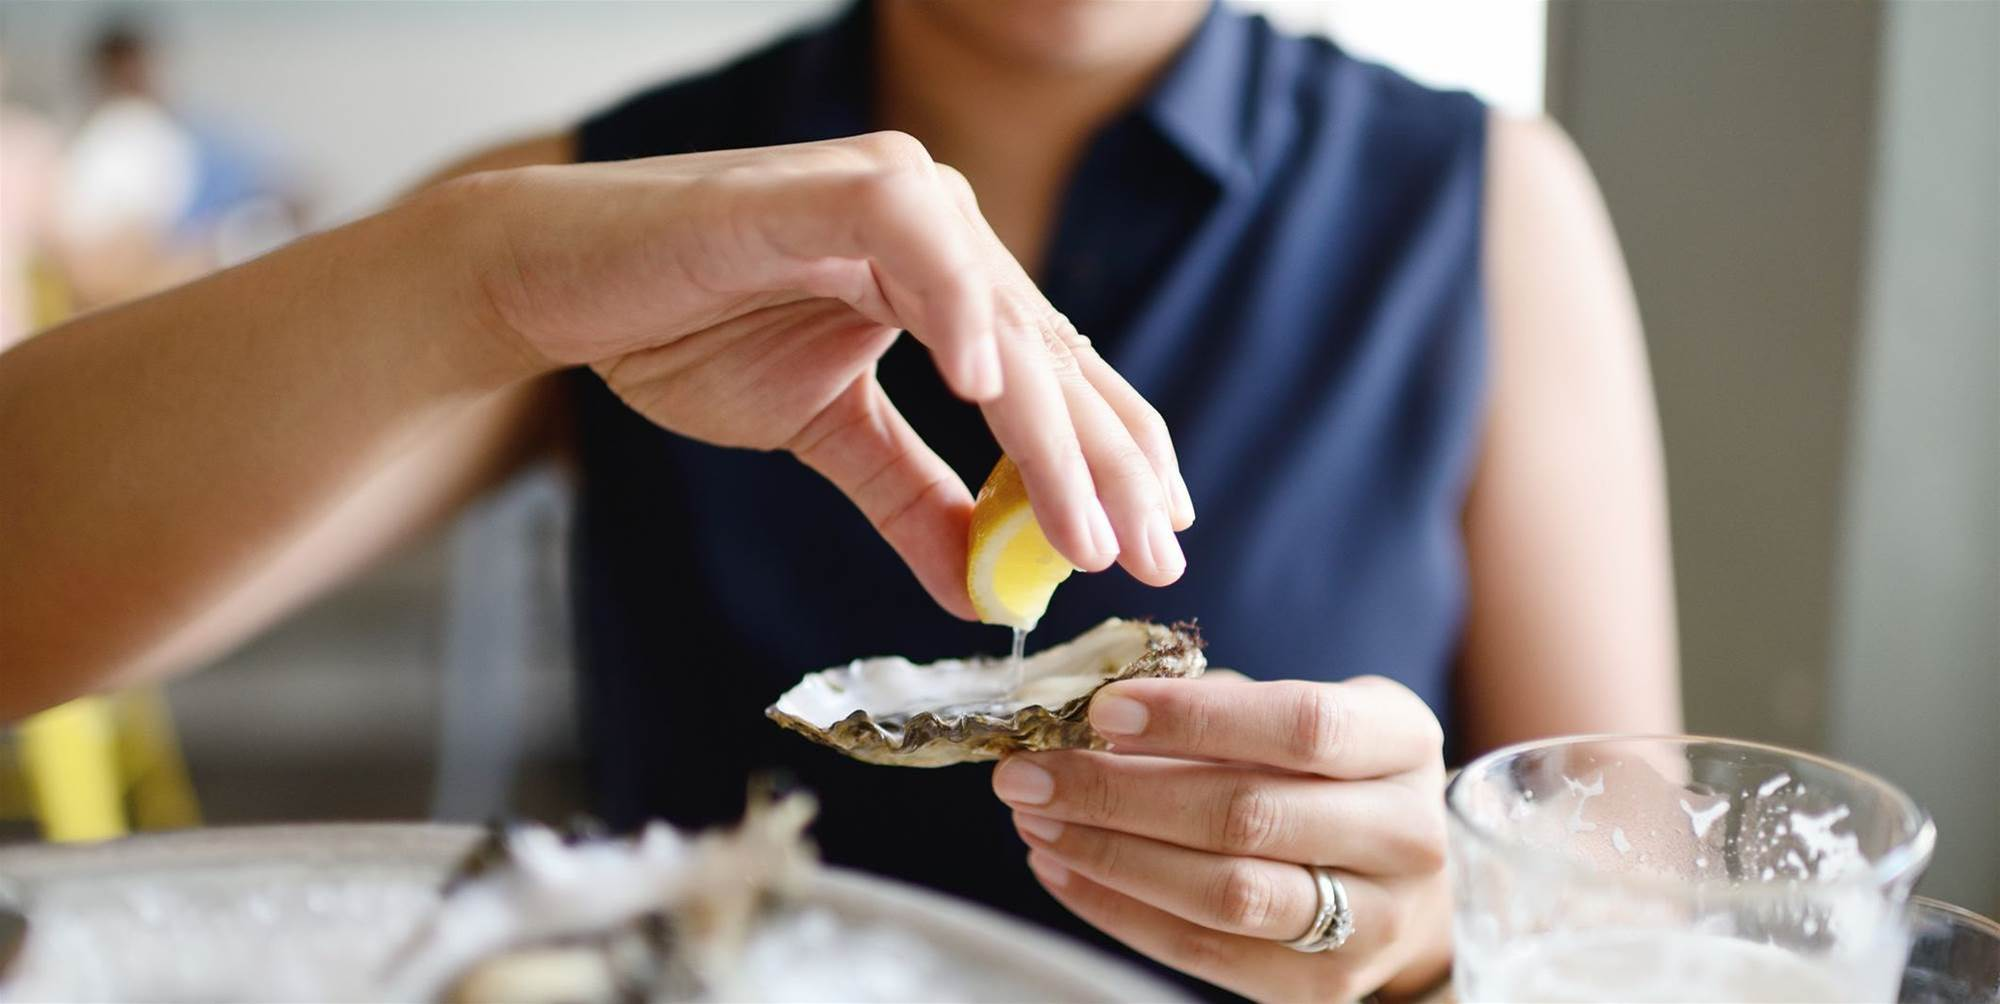 8 Signs You're Not Getting Enough Zinc